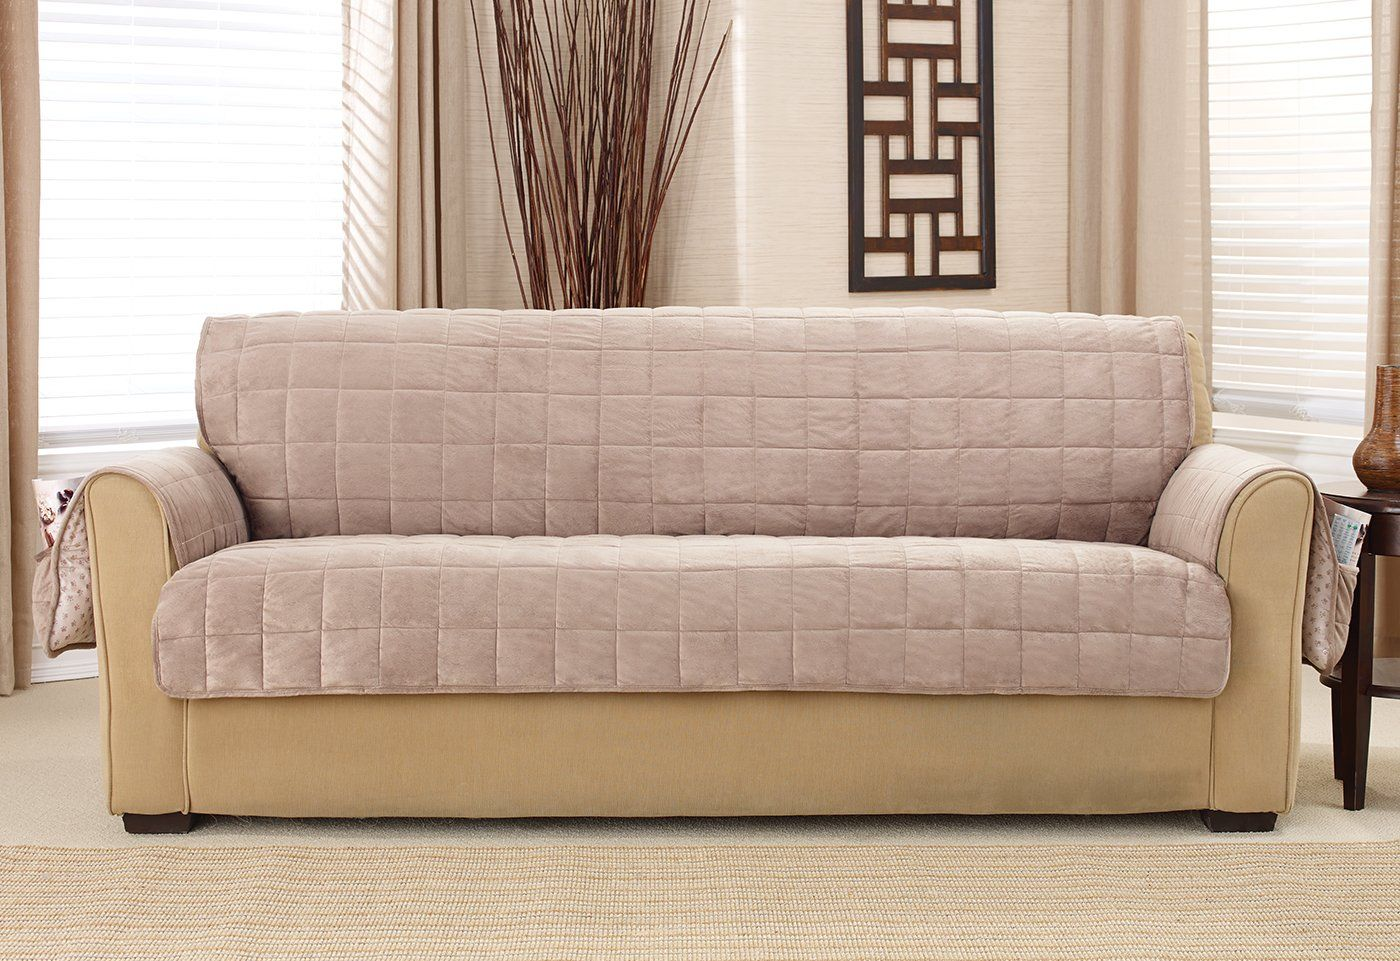 Deep Pile Velvet Sofa Furniture Cover 100 Polyester Pet Furniture Cover Machine Washable Furniture Sofa Furniture Couch Covers For Sale